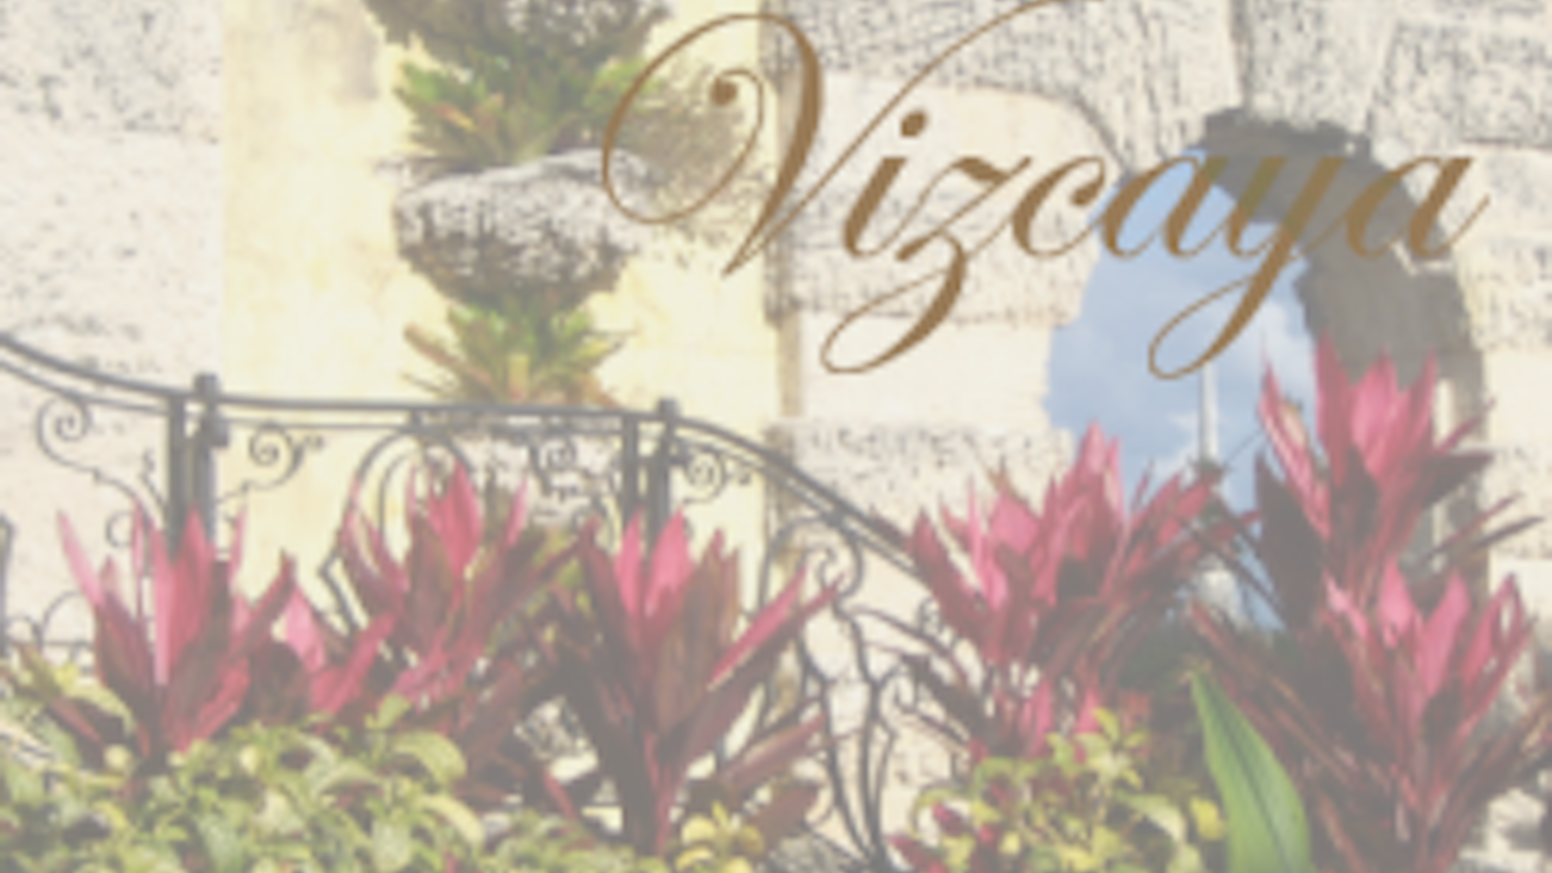 Vizcaya A Young Adult Novel By Lina Endings Are Never Simple